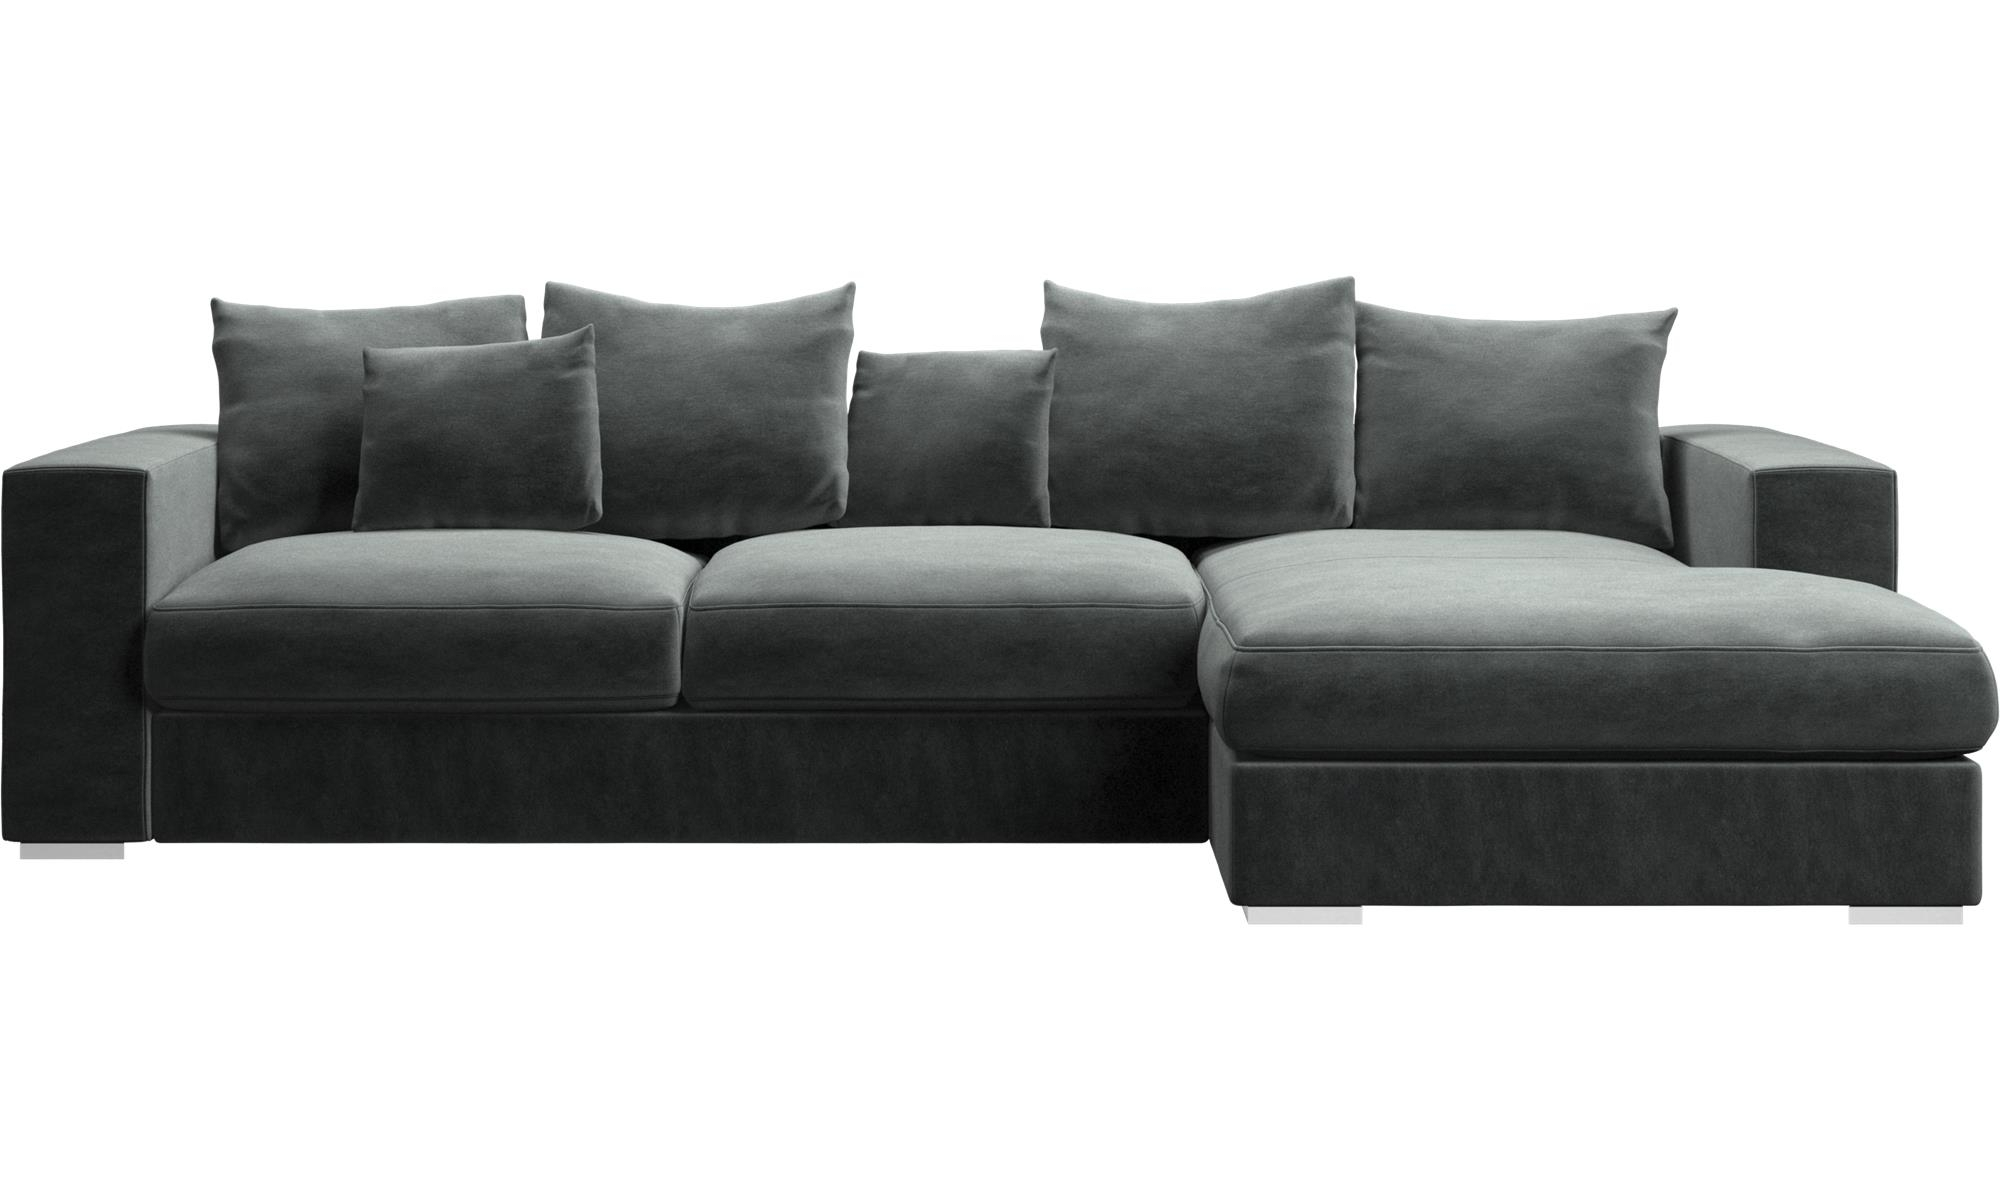 Favorite Sofas With Chaise Lounge Intended For Chaise Lounge Sofas – Cenova Sofa With Resting Unit – Boconcept (View 10 of 15)